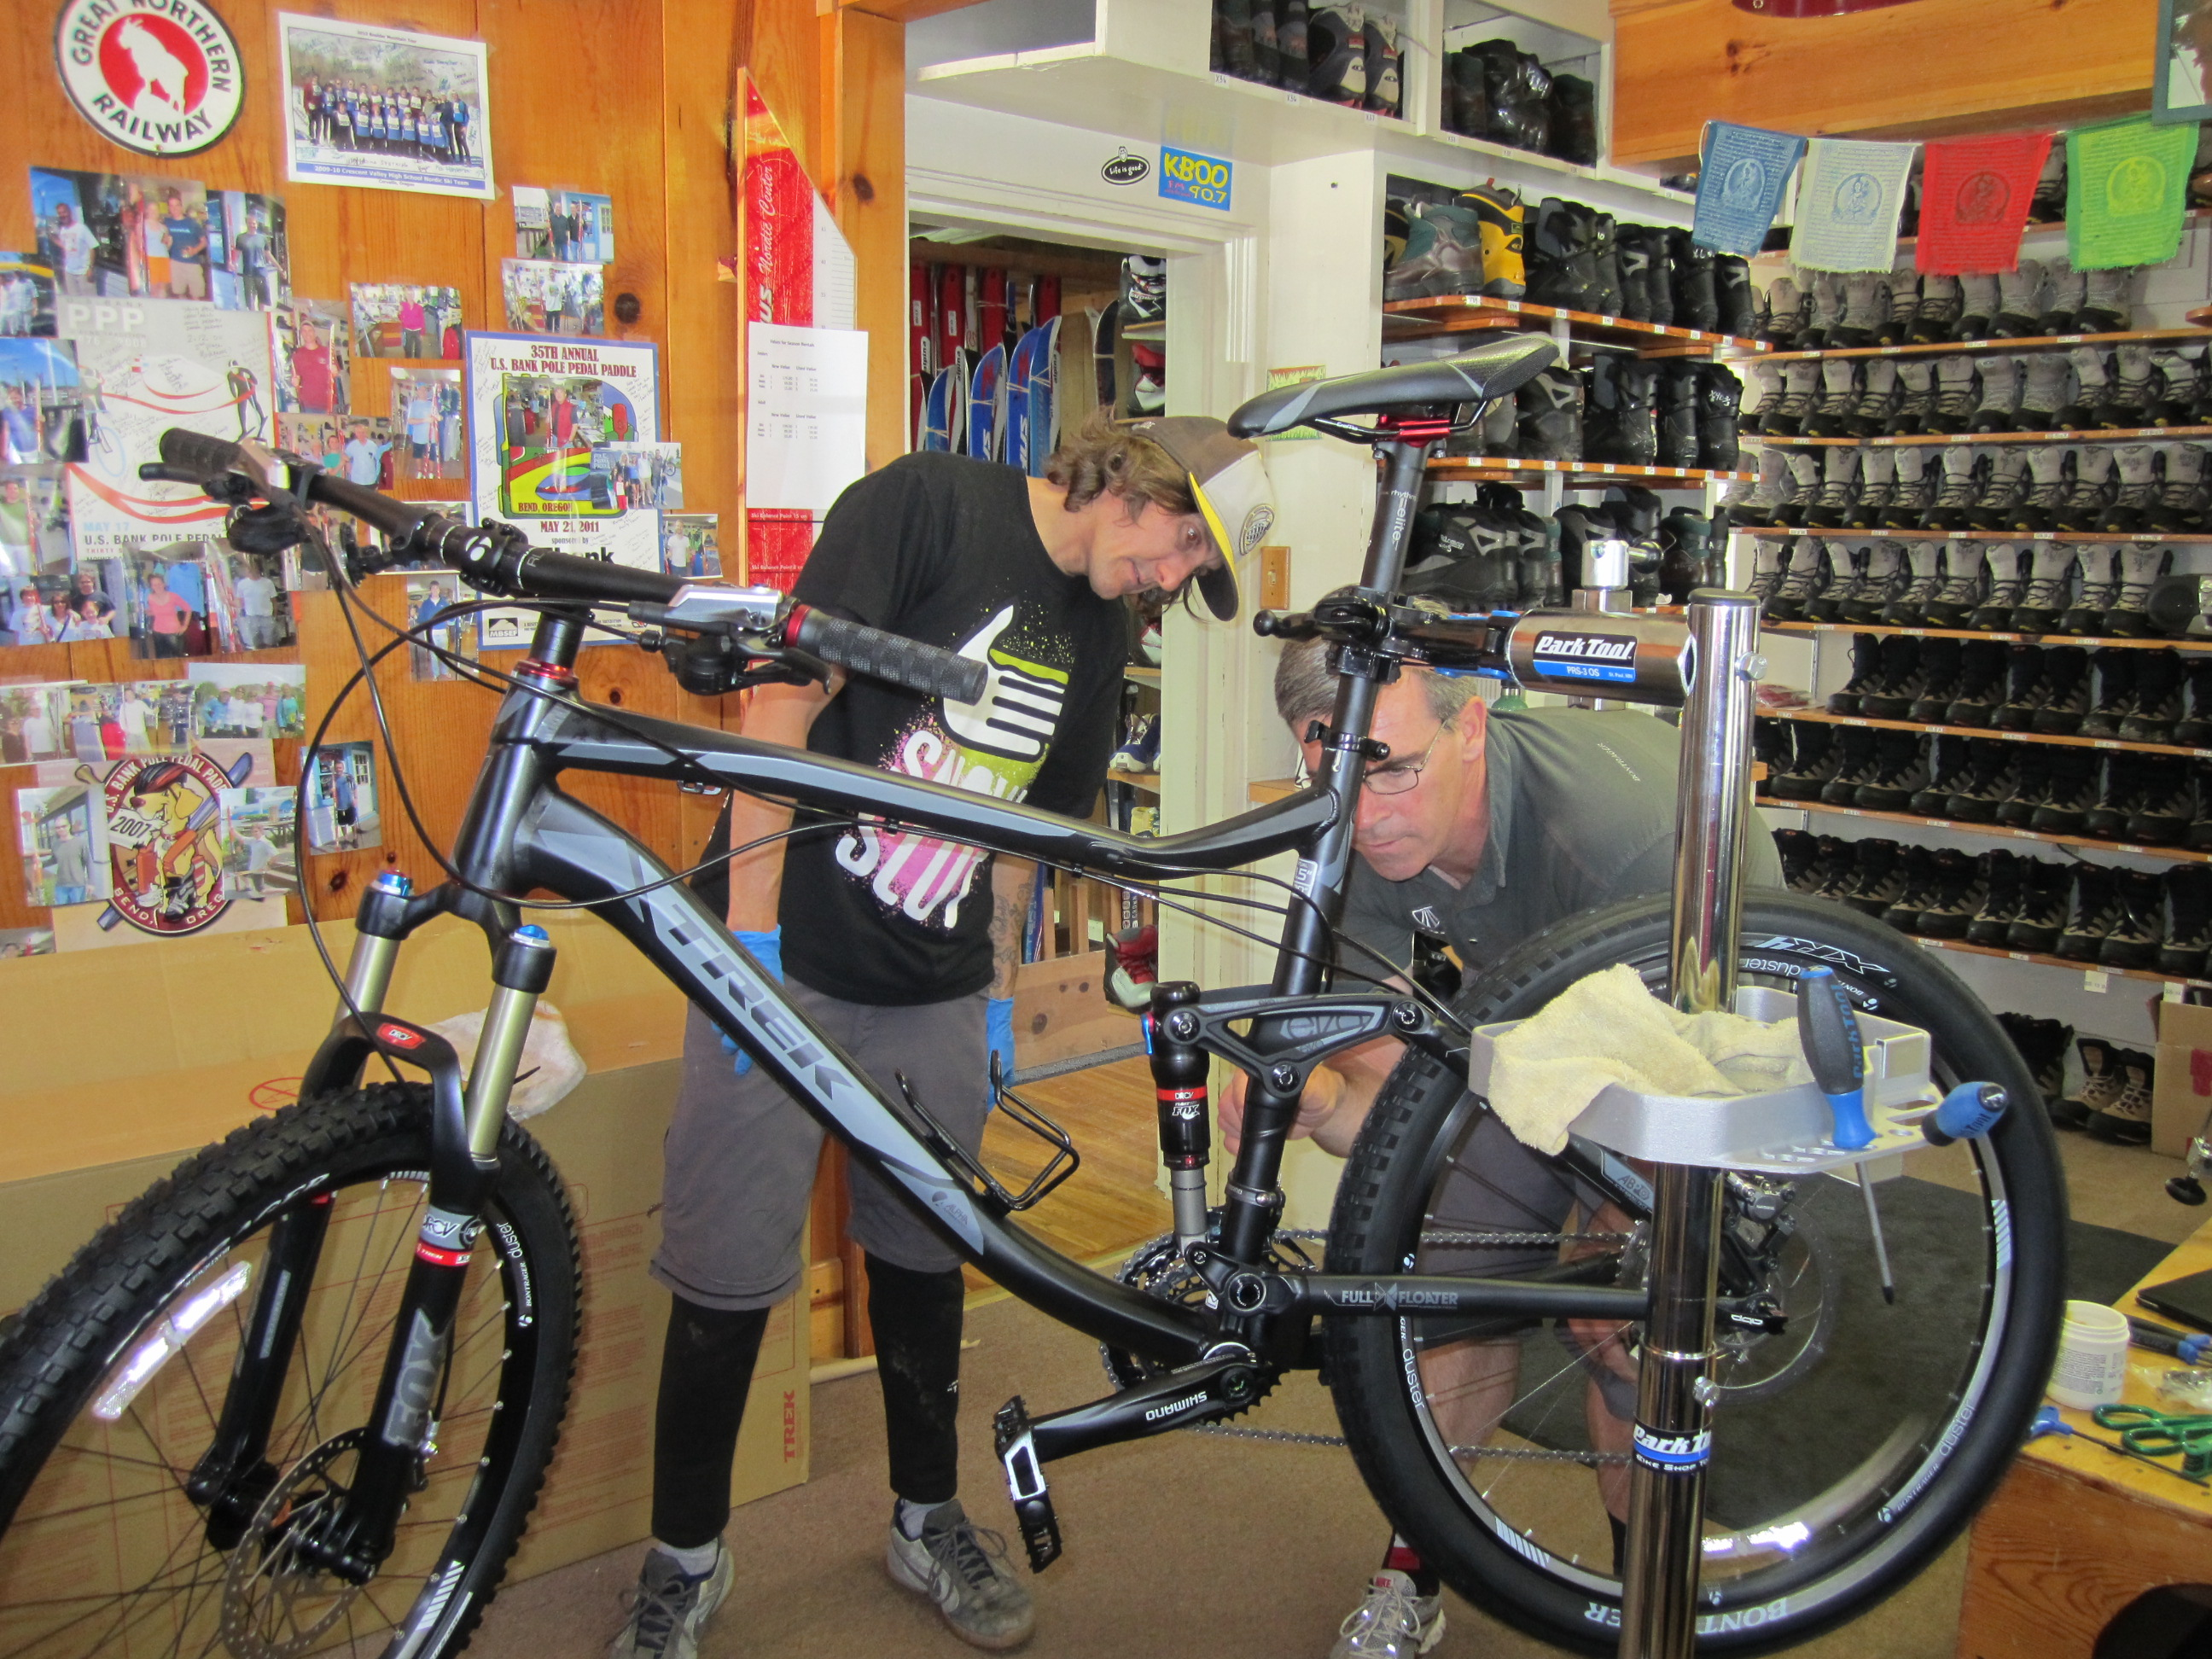 Toby, the Trek Rep and Dan assembling bikes